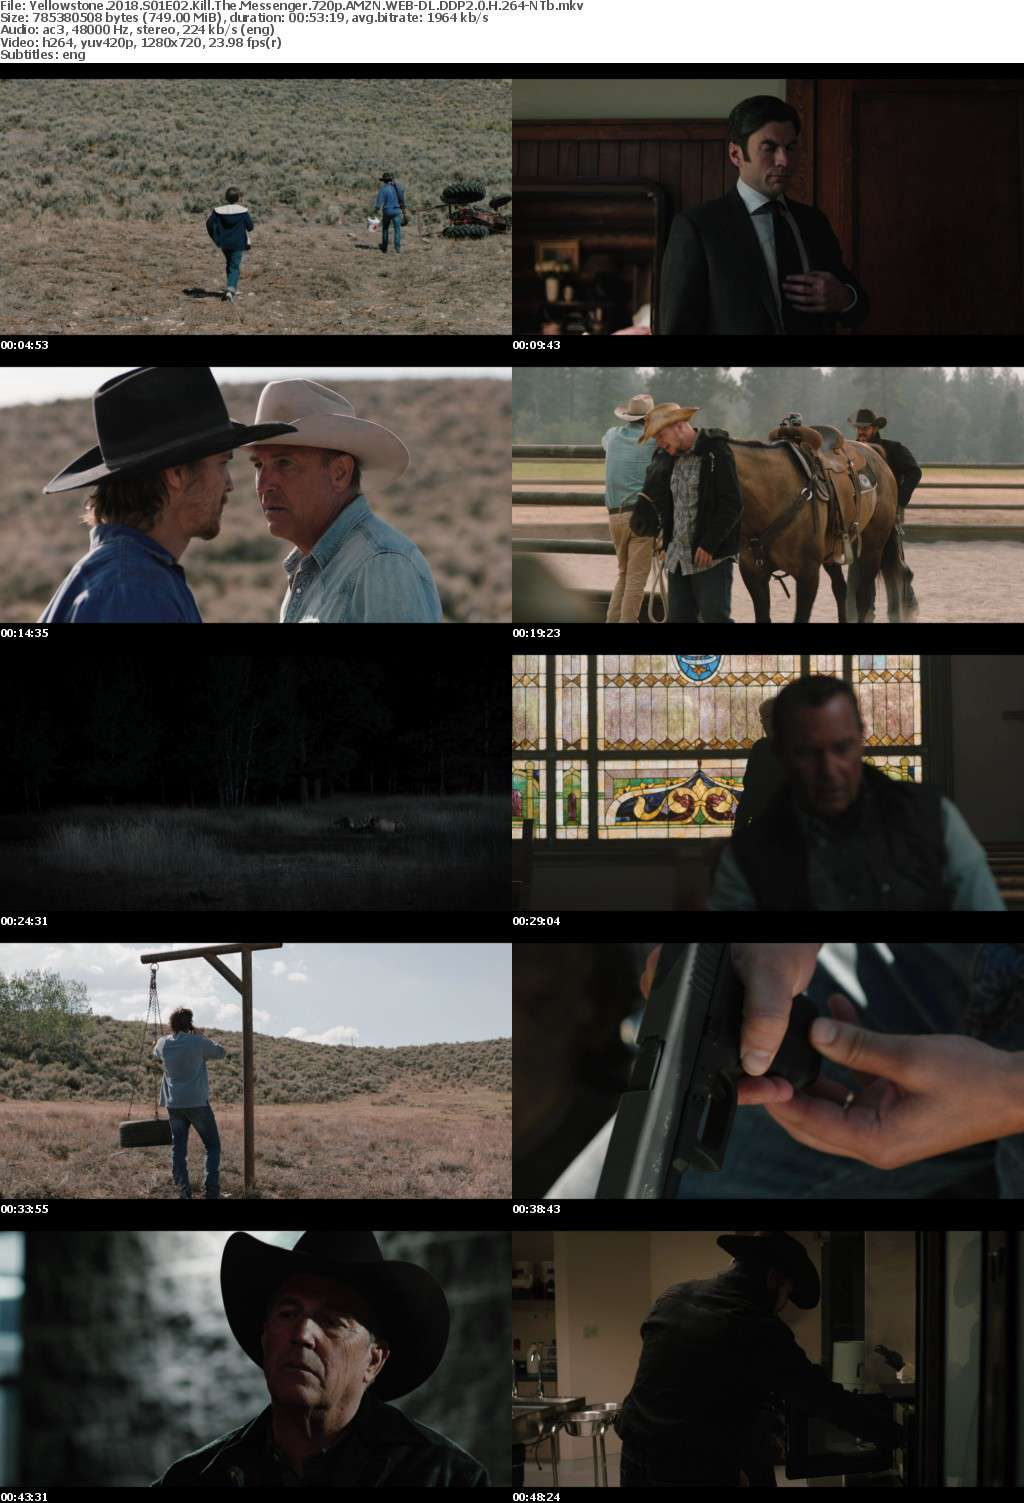 Yellowstone 2018 S01E02 Kill The Messenger 720p AMZN WEB-DL DDP2 0 H 264-NTb